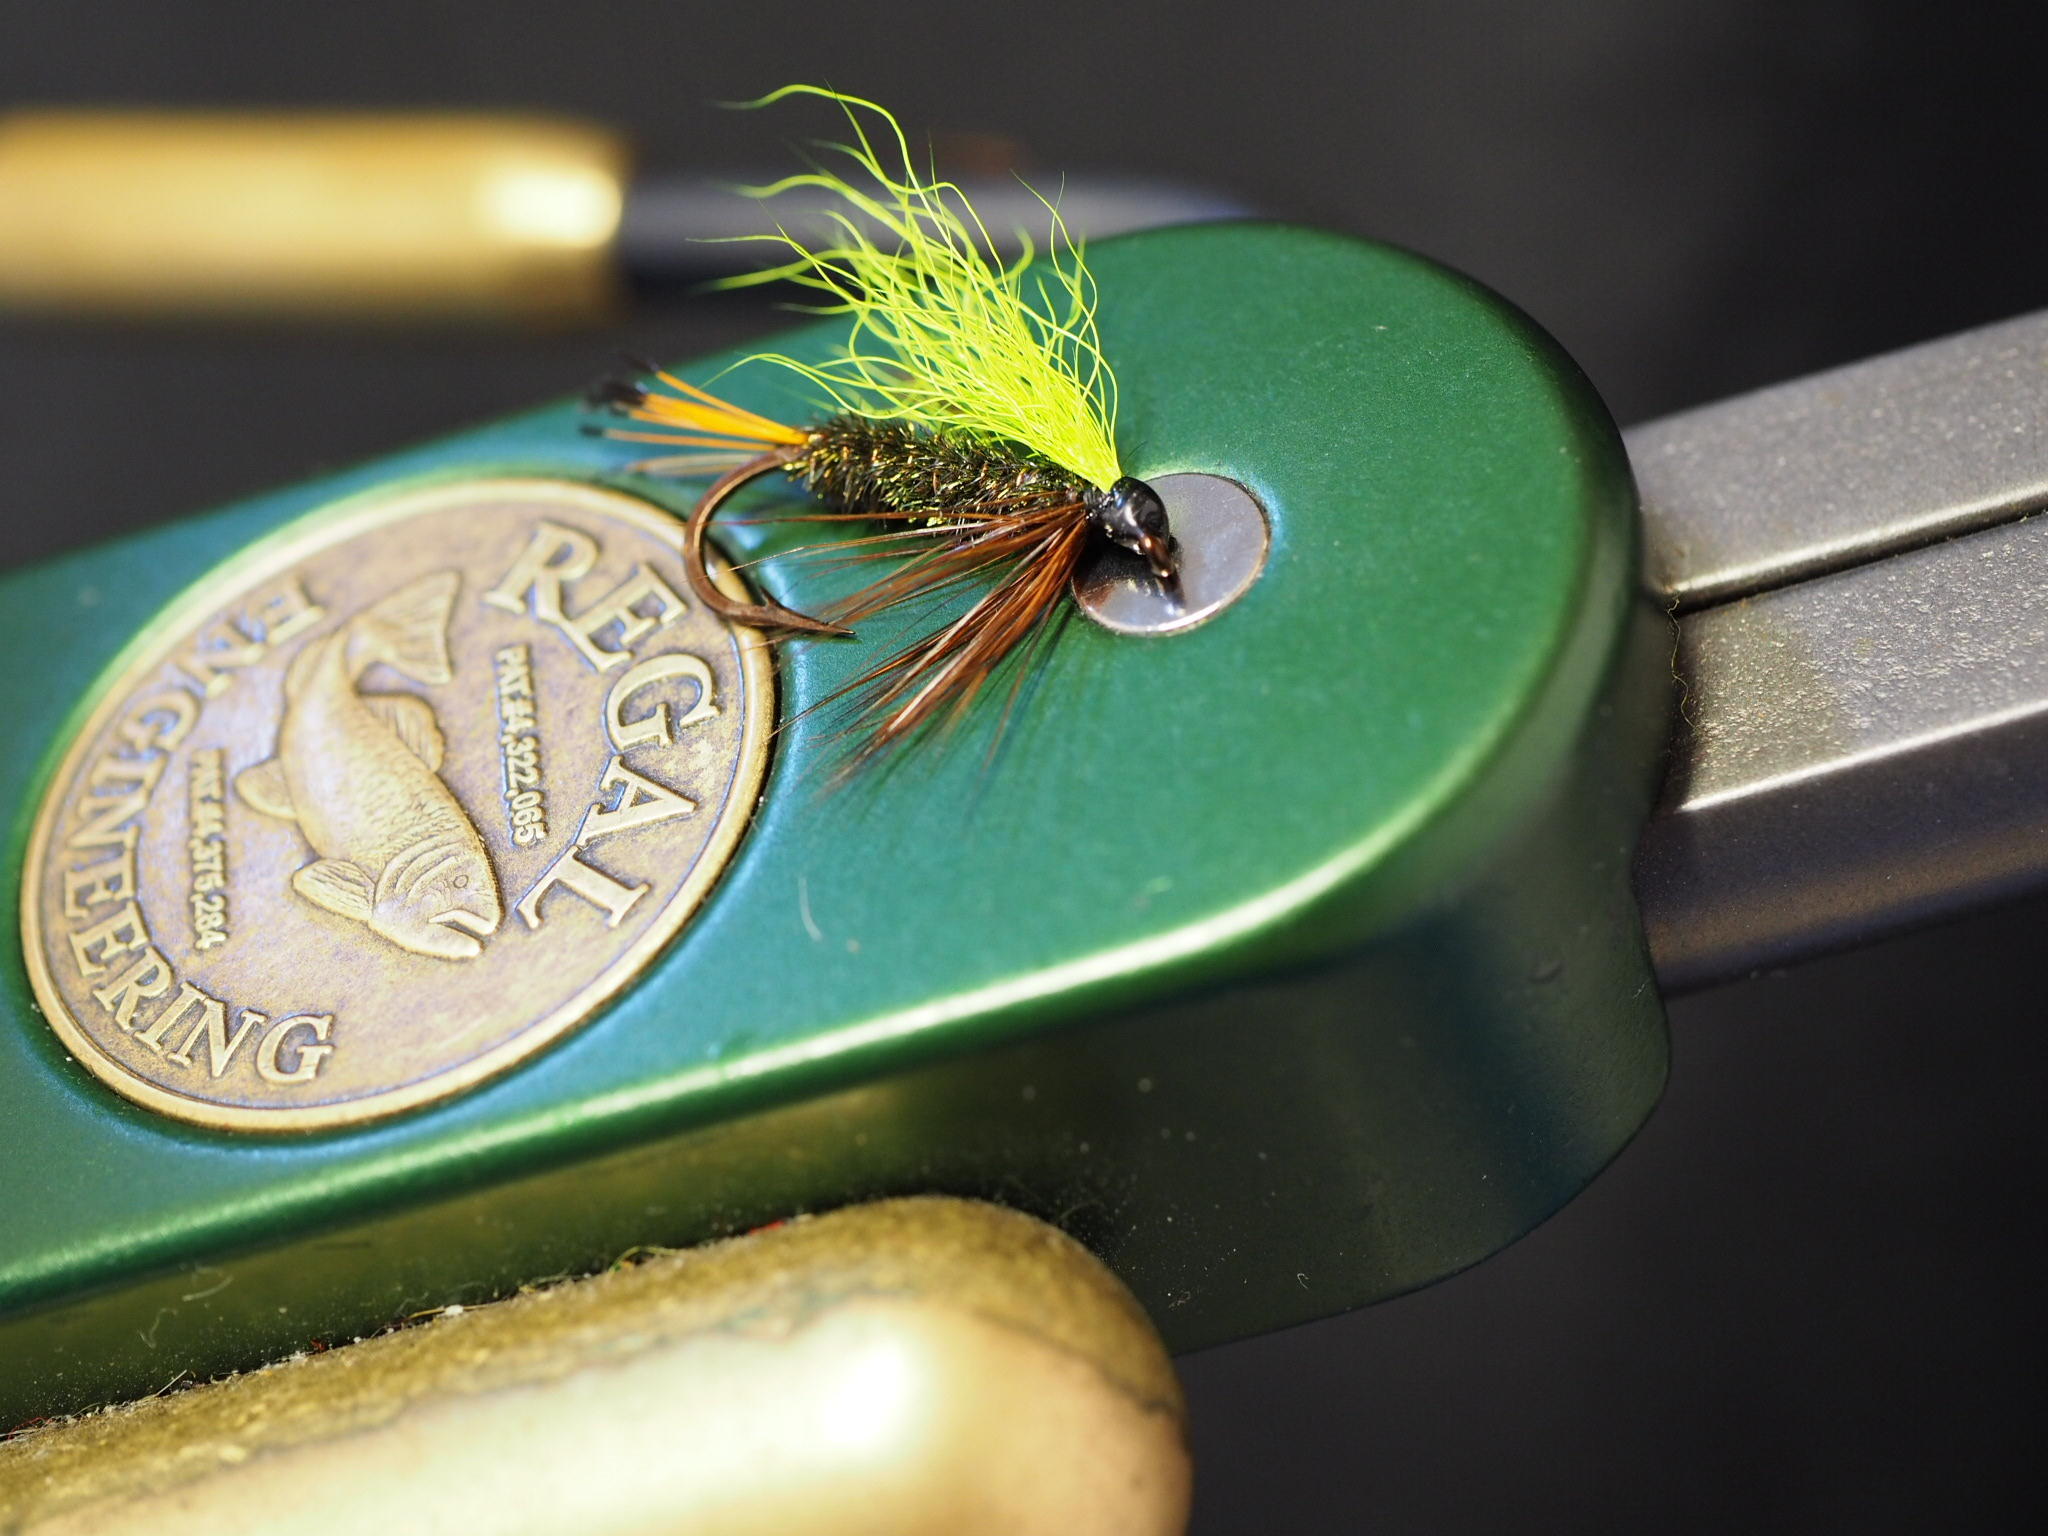 Yellow wing, peacock herl body, golden pheasant tippet tail